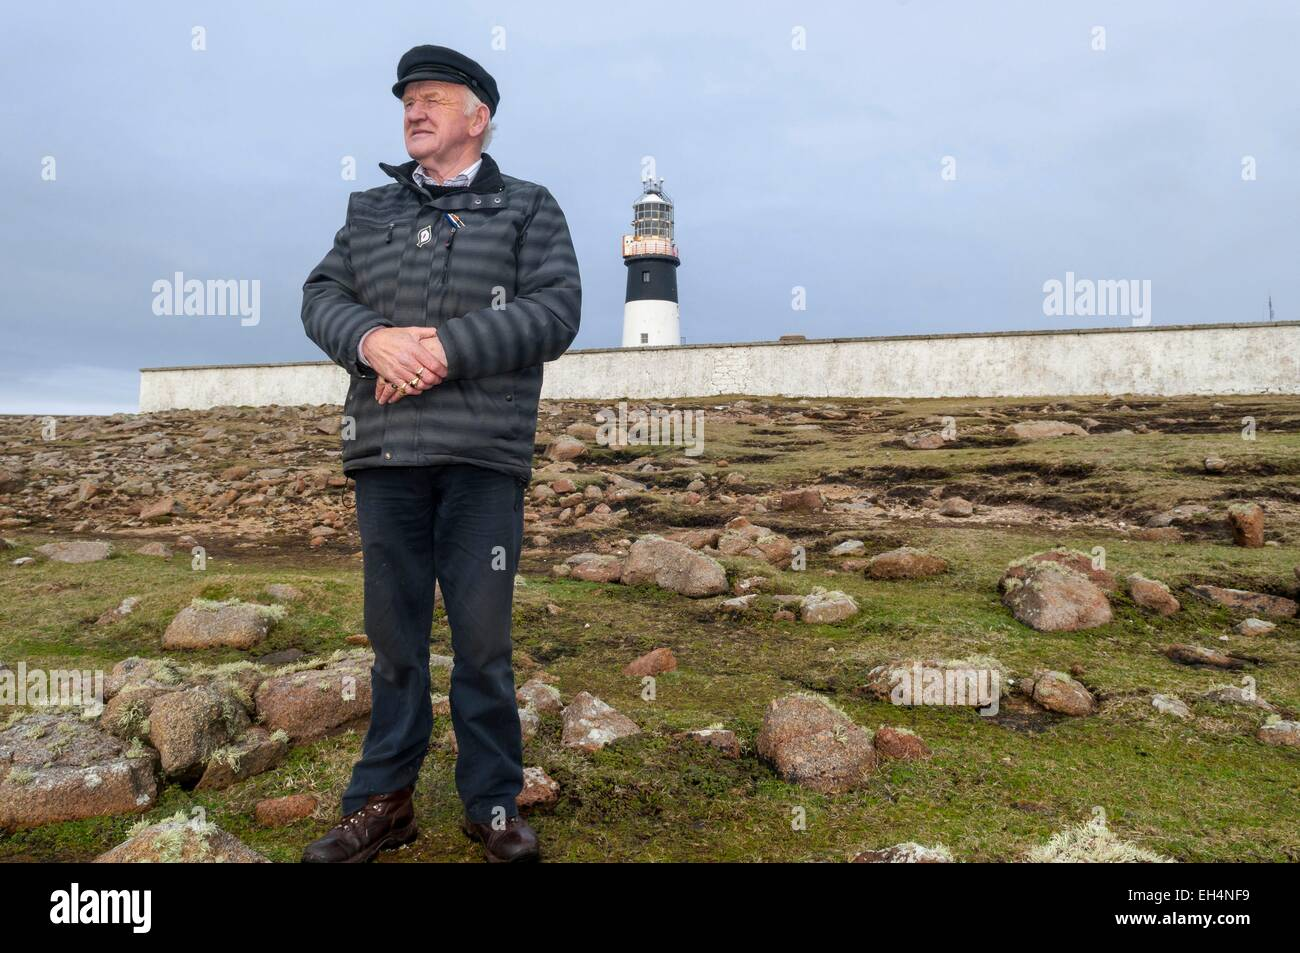 Ireland, Ulster, Donegal County, island of Tory, Patsy Dan Rodgers, the King of Tory in front of lighthouse on west - Stock Image